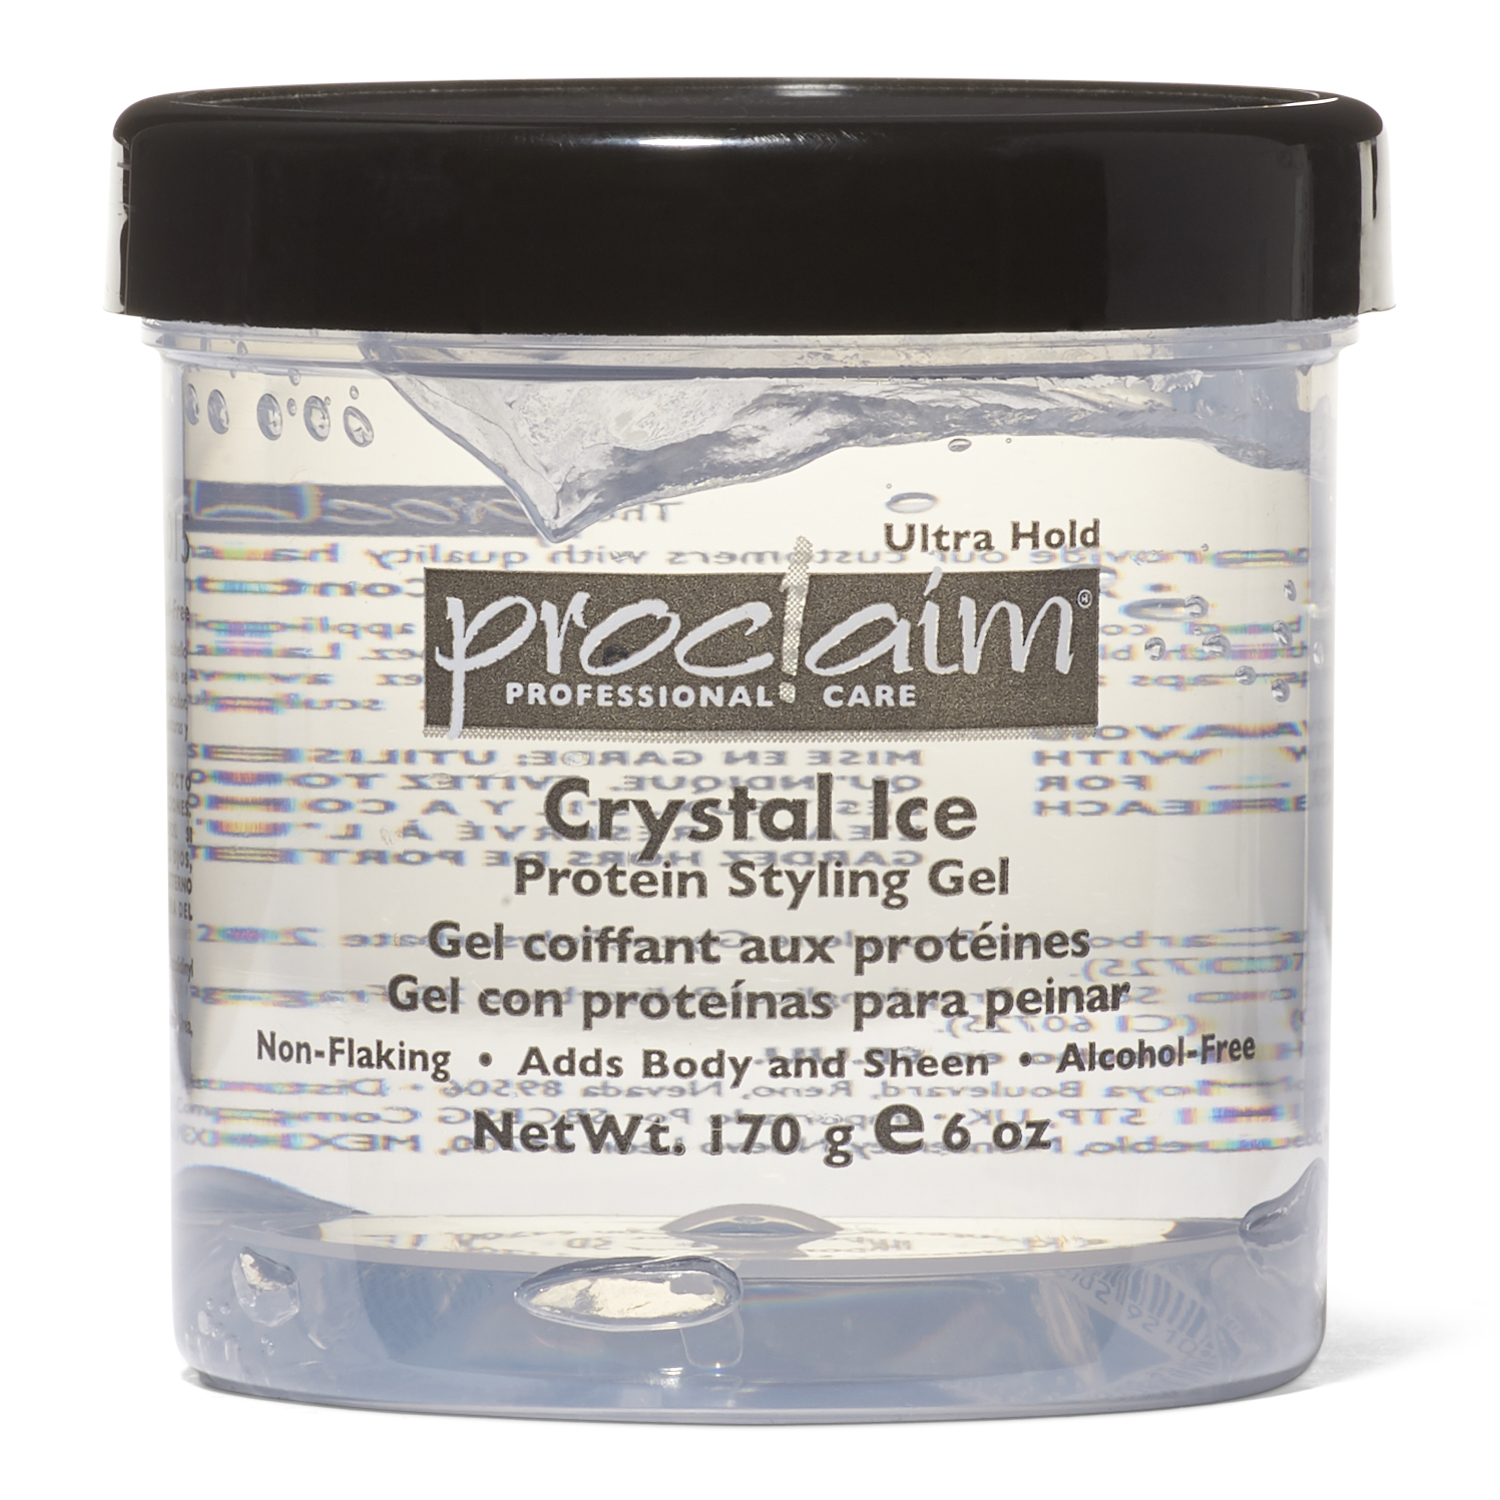 Hair Gel Styles: Proclaim Crystal Ice Protein Styling Gel